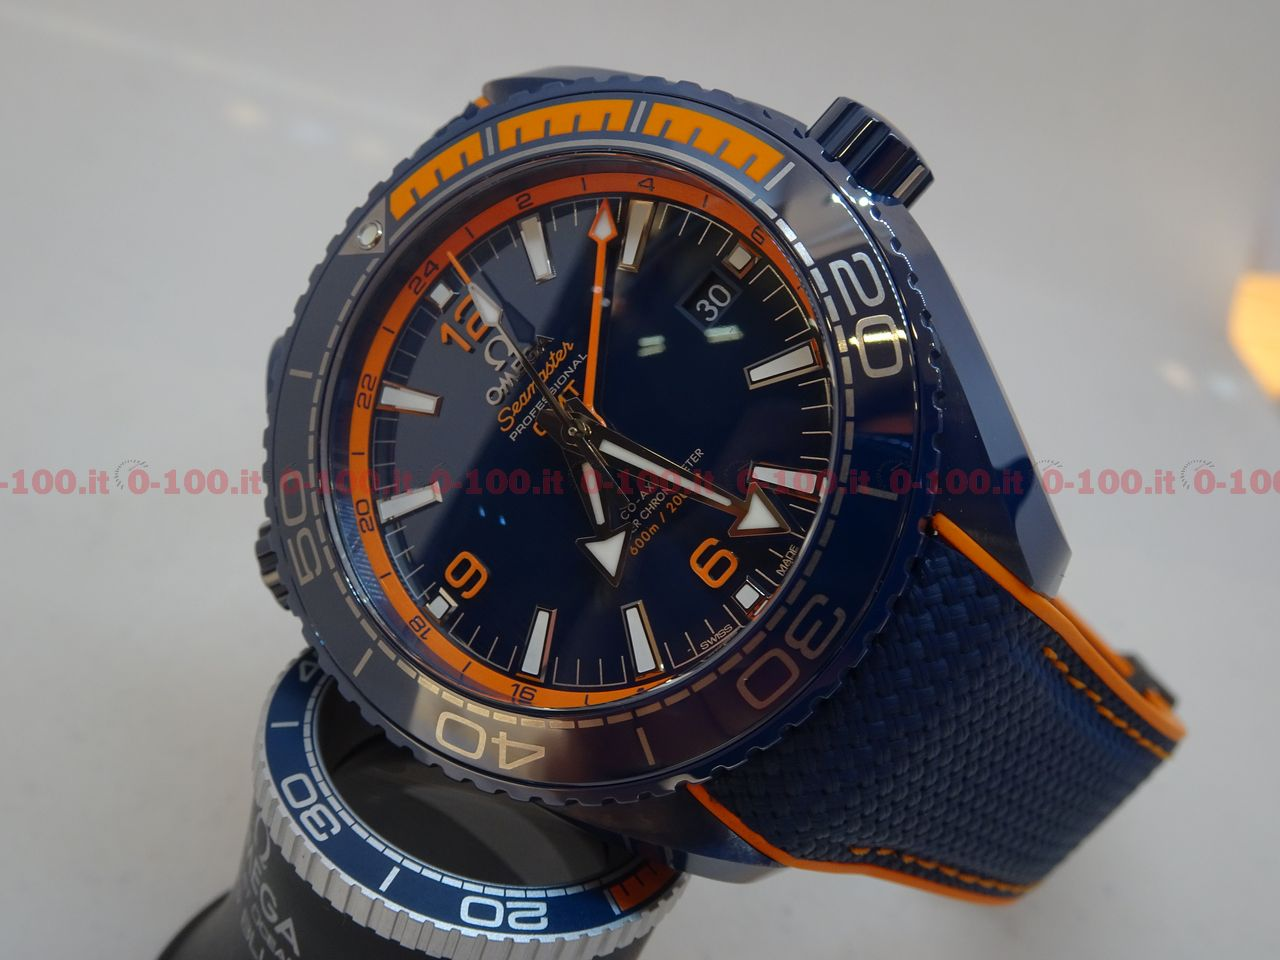 baselworld-2017-OMEGA SEAMASTER PLANET OCEAN BIG BLUE-diver- -prezzo-price_0-1004